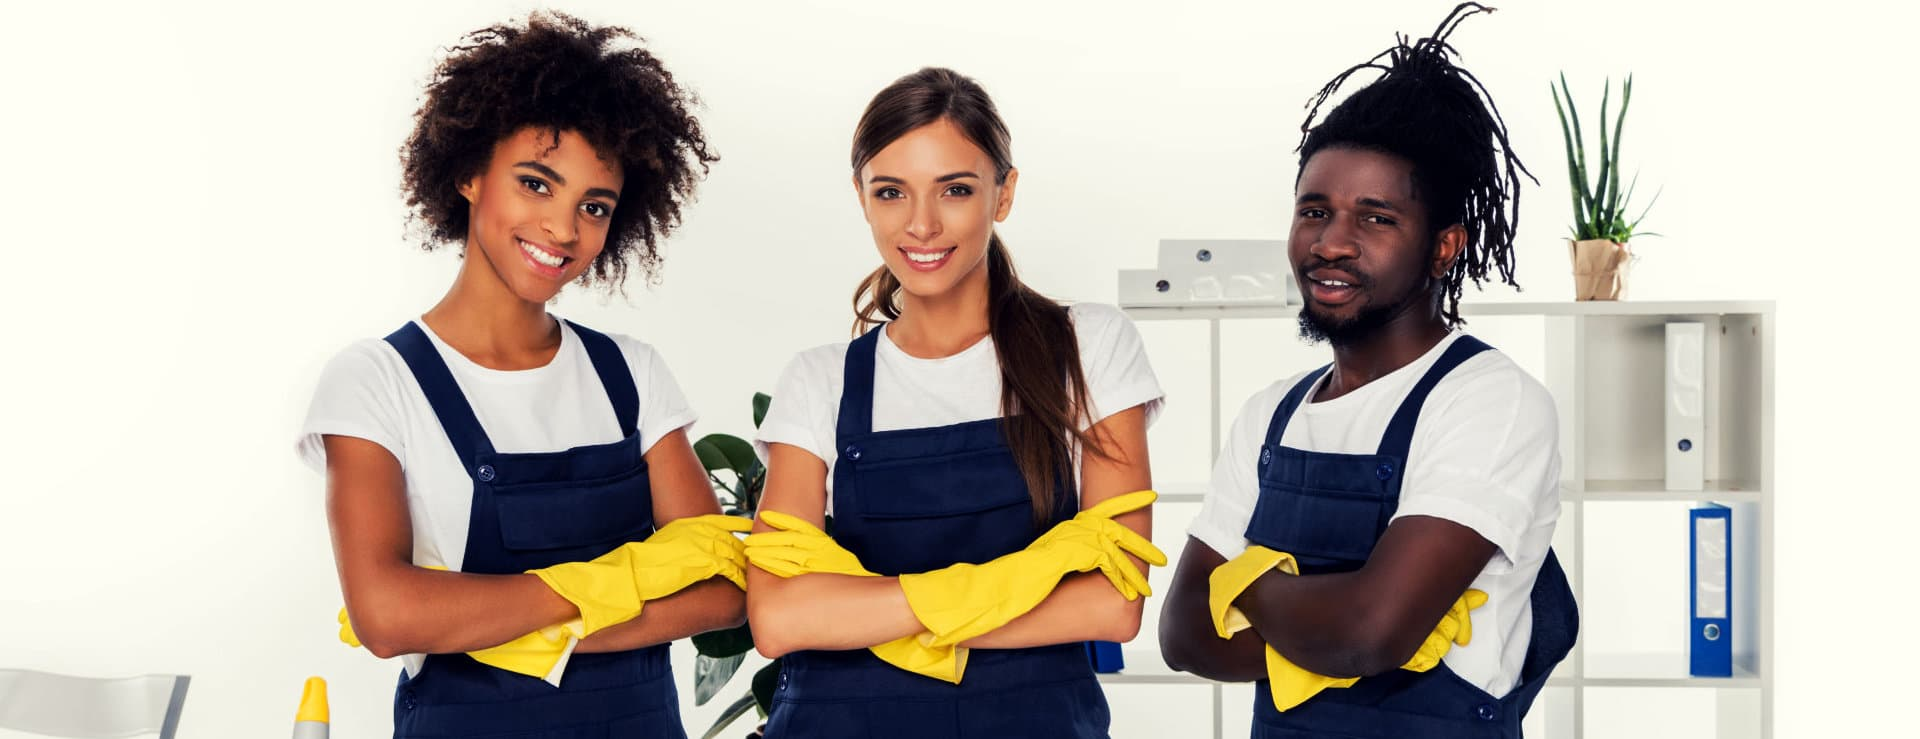 group of cleaners smiling